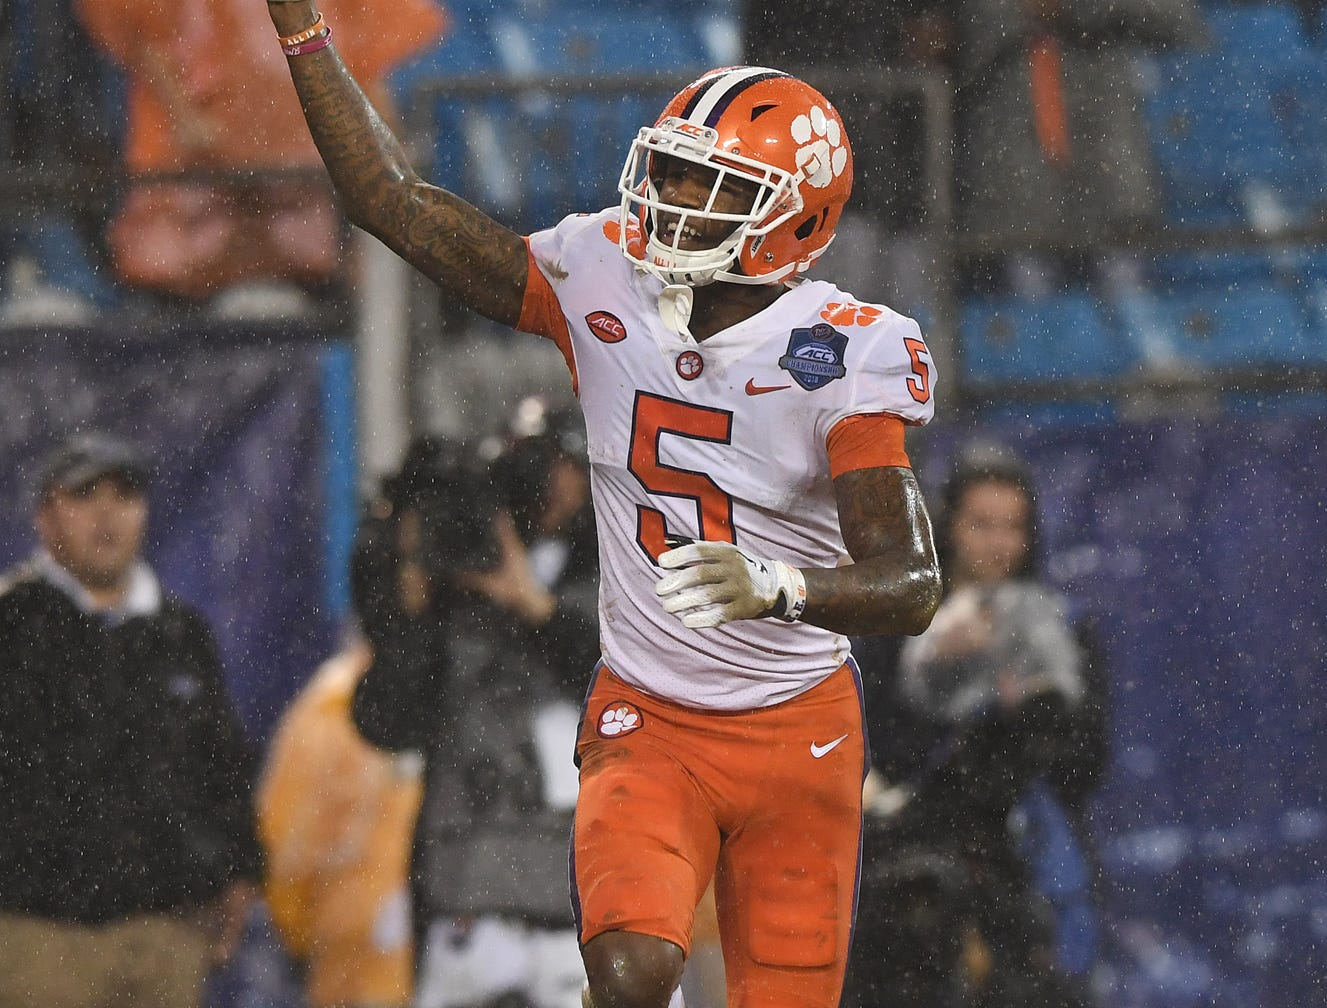 Clemson wide receiver Tee Higgins (5) celebrates after catching a TD against Pittsburgh during the 2nd quarter of the Dr. Pepper ACC Championship at Bank of America Stadium in Charlotte, N.C. Saturday, December 1, 2018.